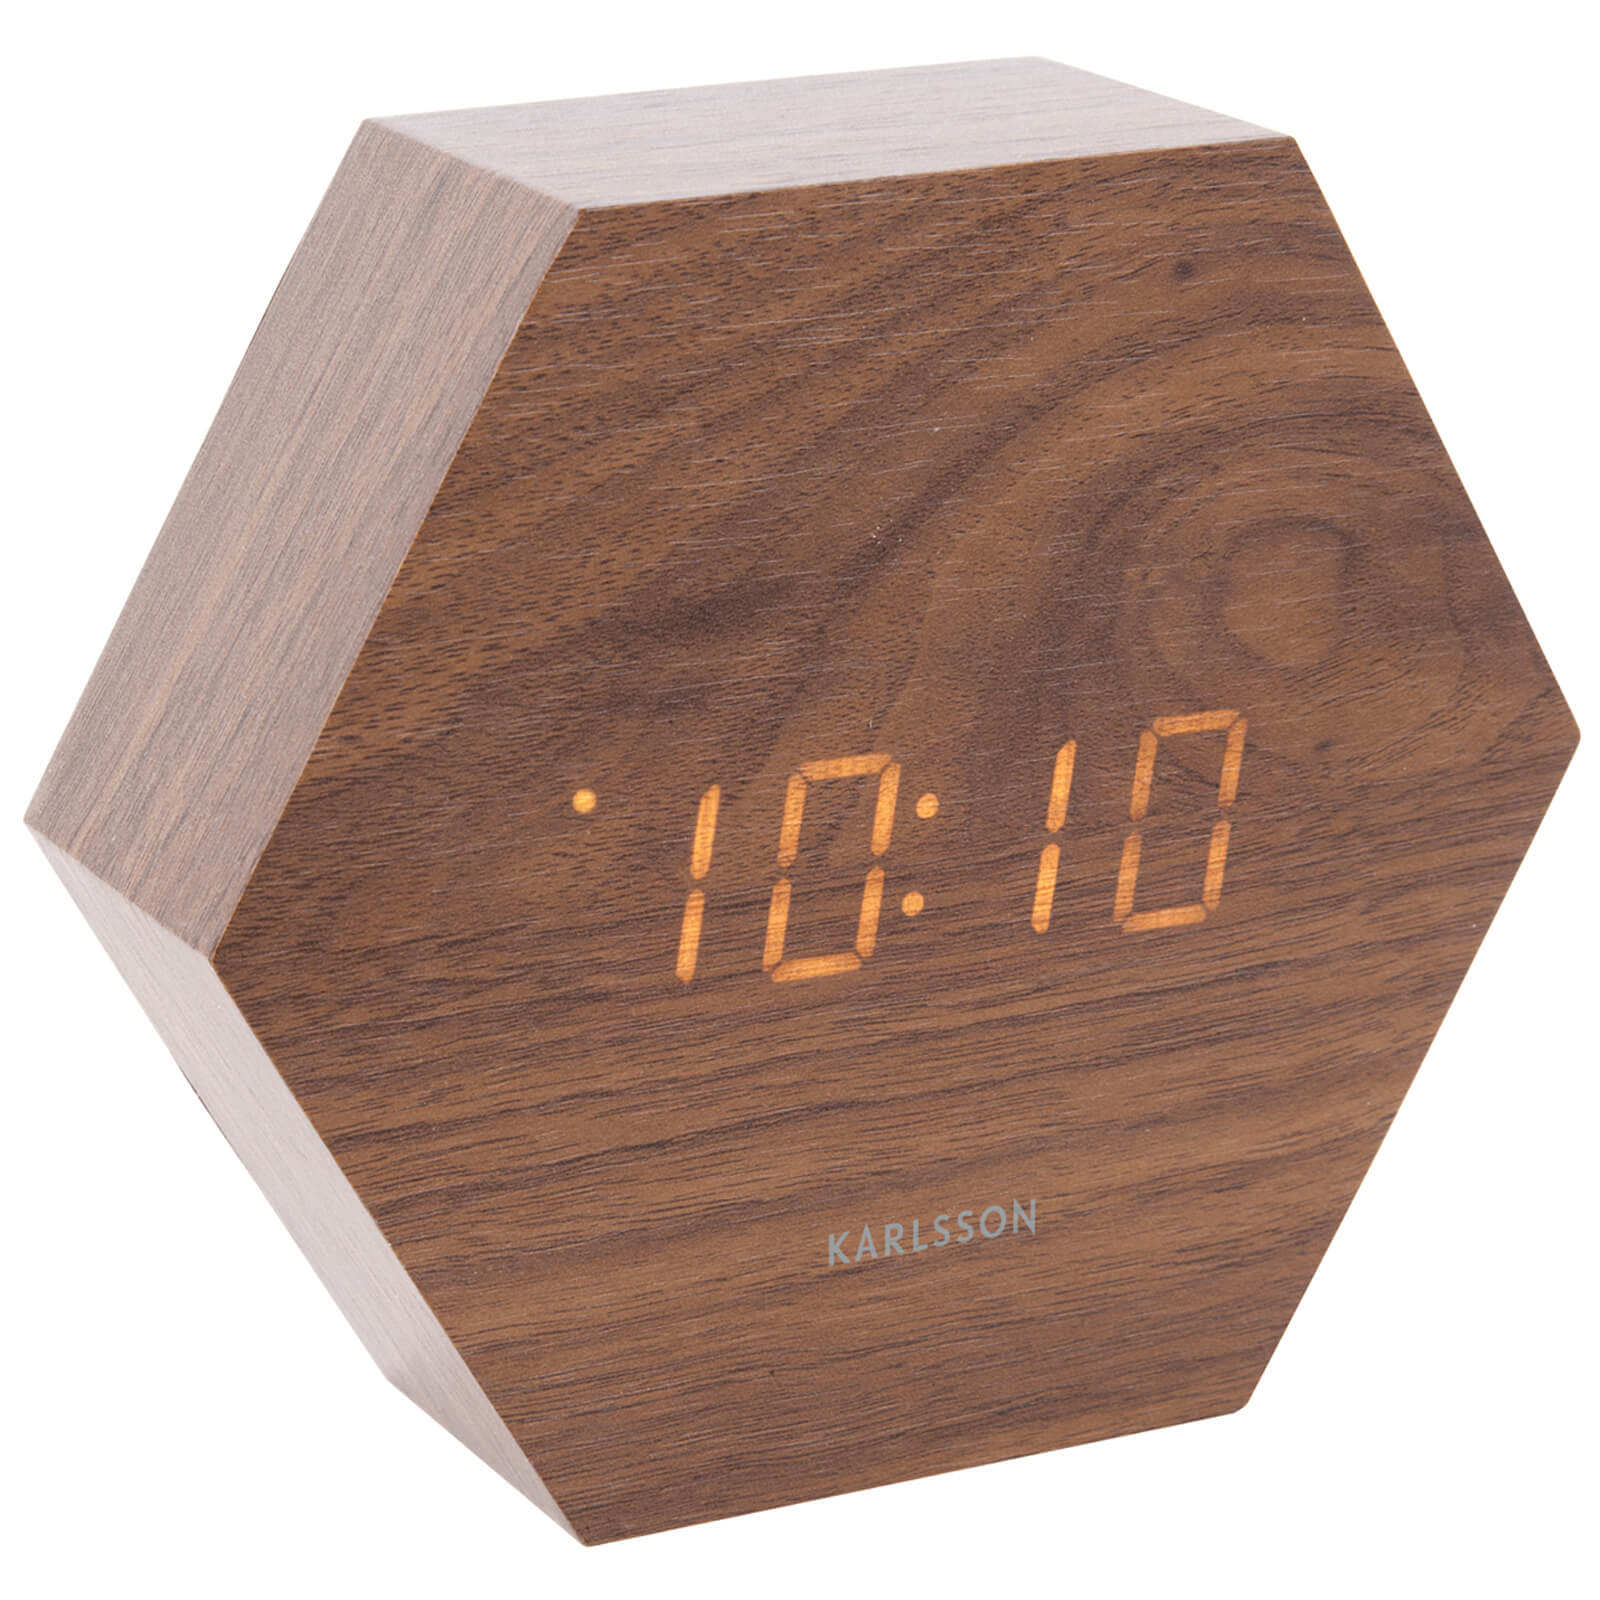 Karlsson Hexagon Alarm Clock - Dark Wood Veneer - Orange LED